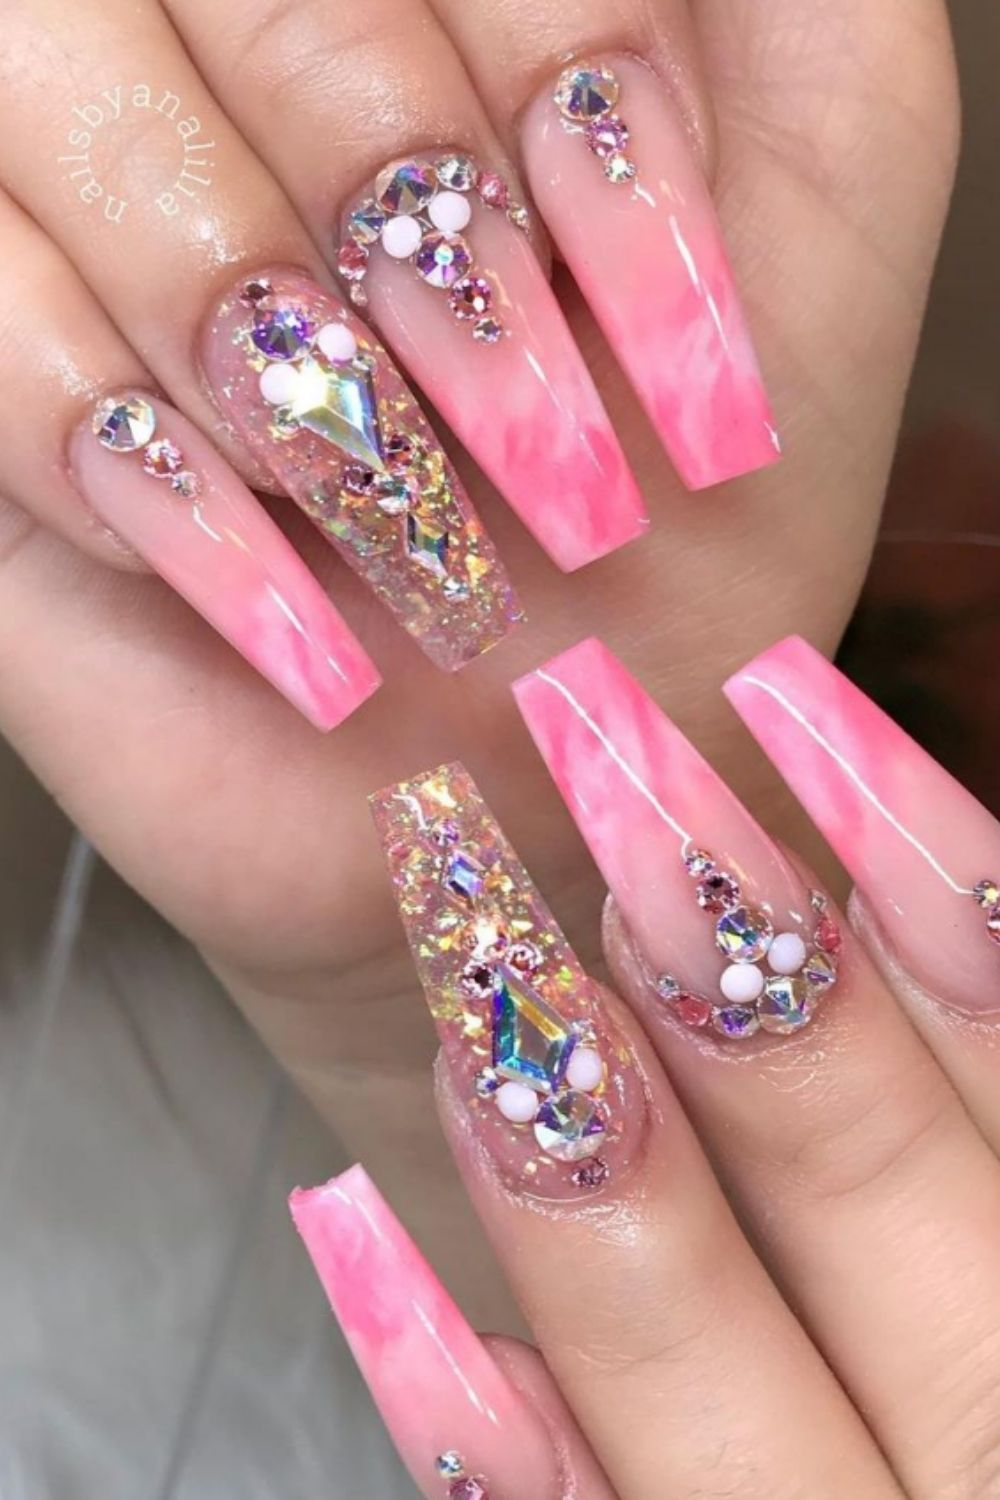 pink ombre nails design 2021